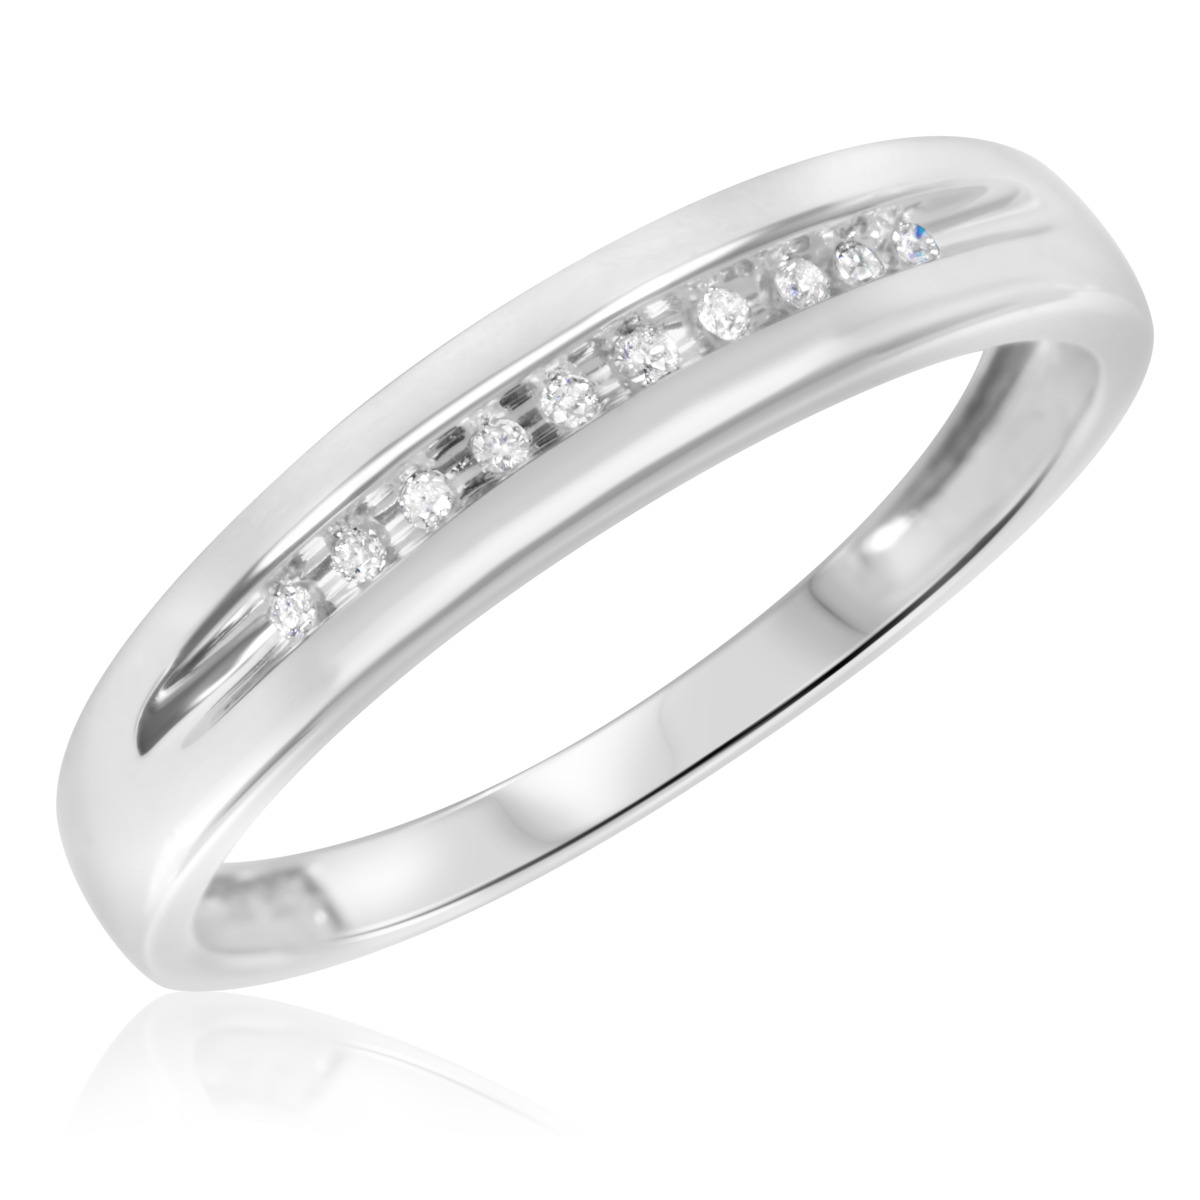 1/15 CT. T.W. Diamond Men's Wedding Band 10K White Gold